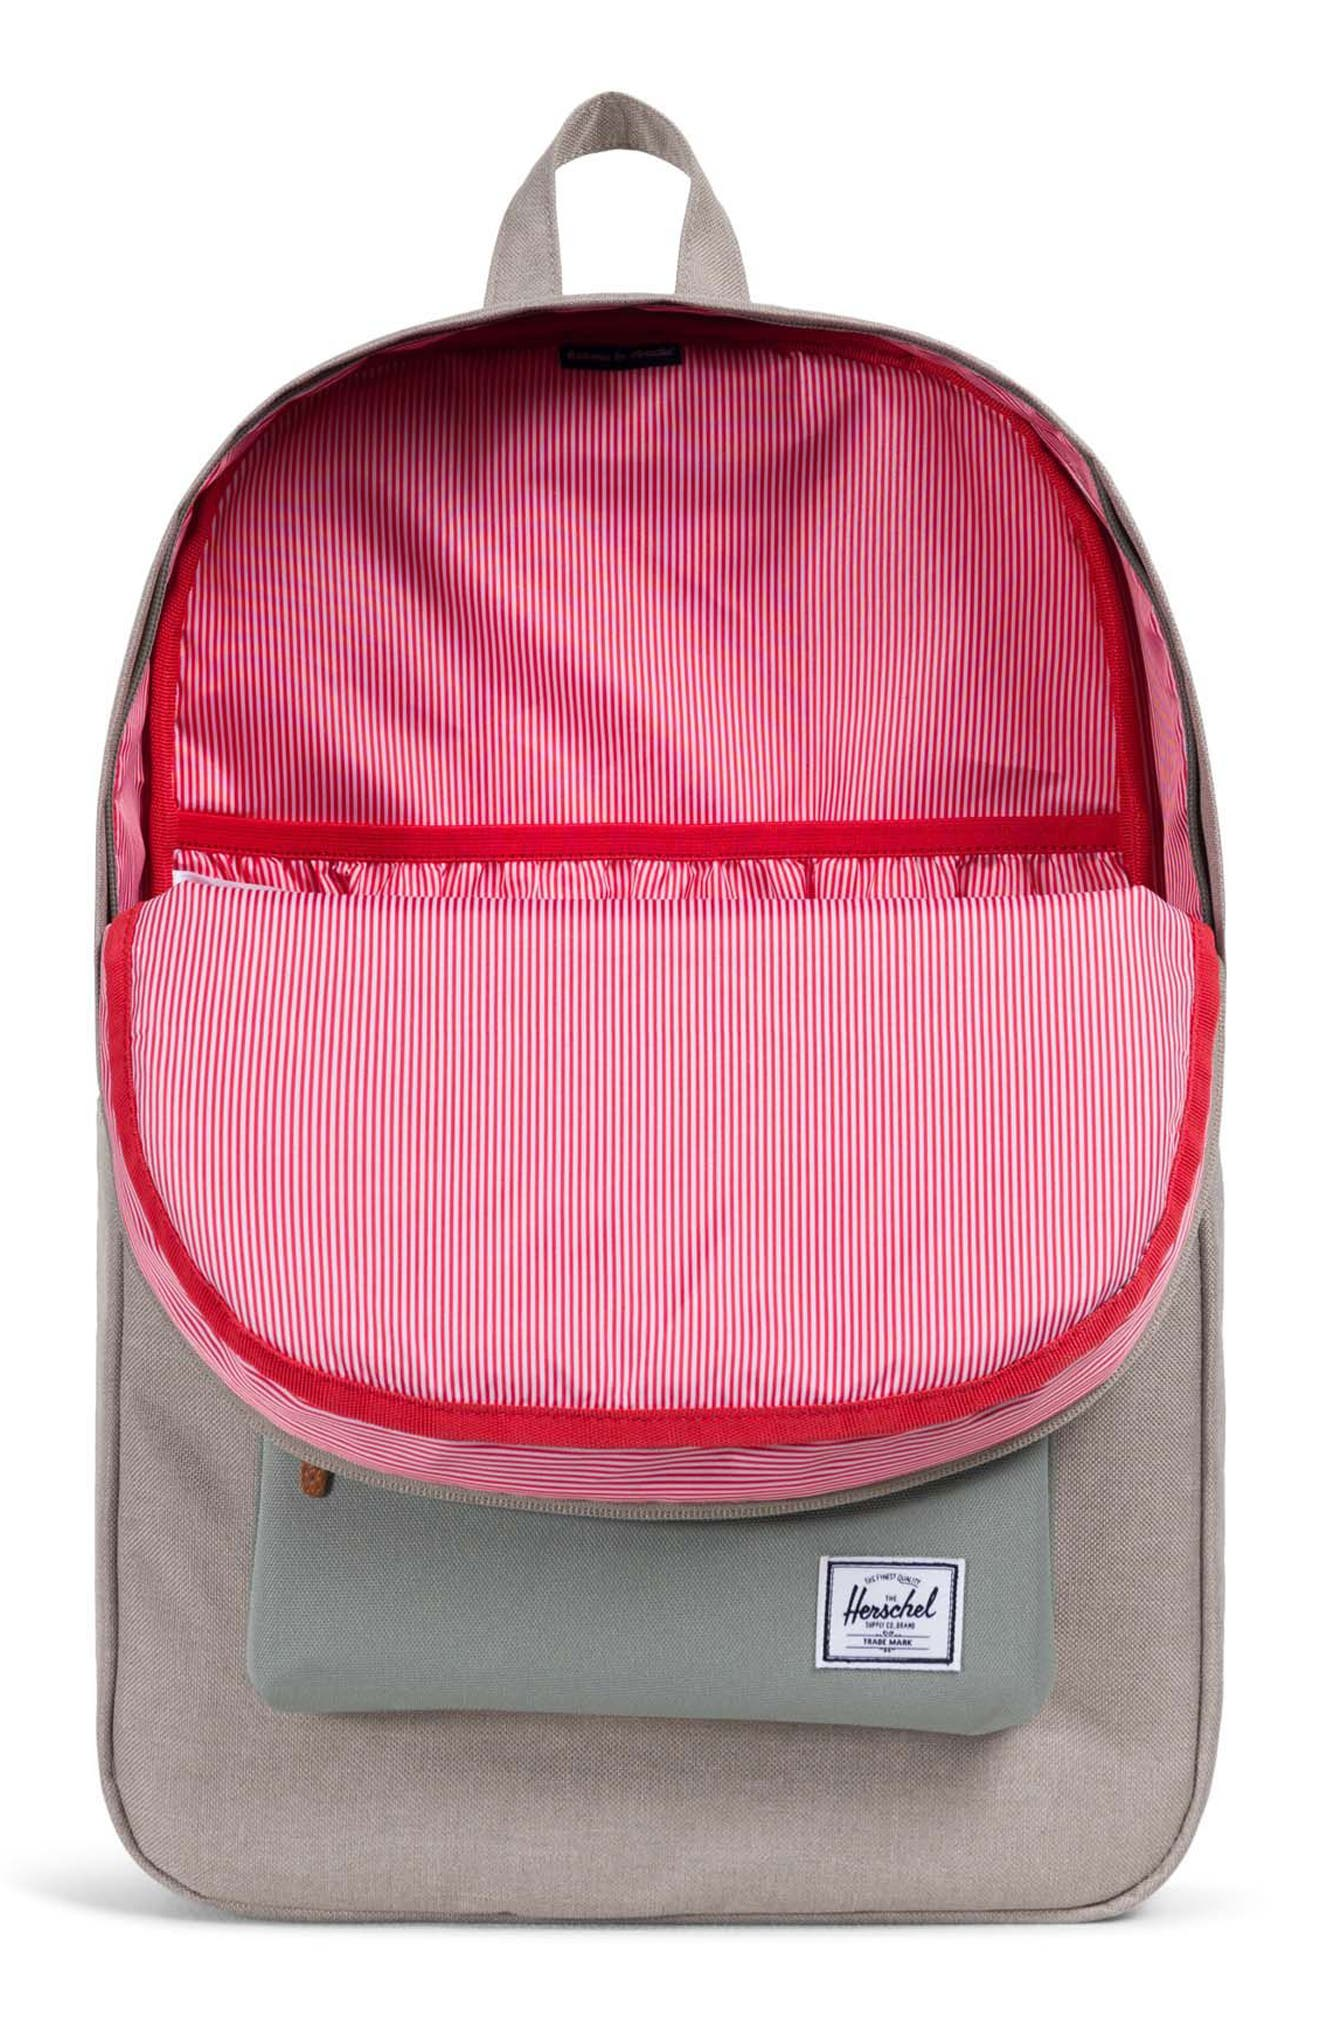 Heritage Backpack,                             Alternate thumbnail 3, color,                             200